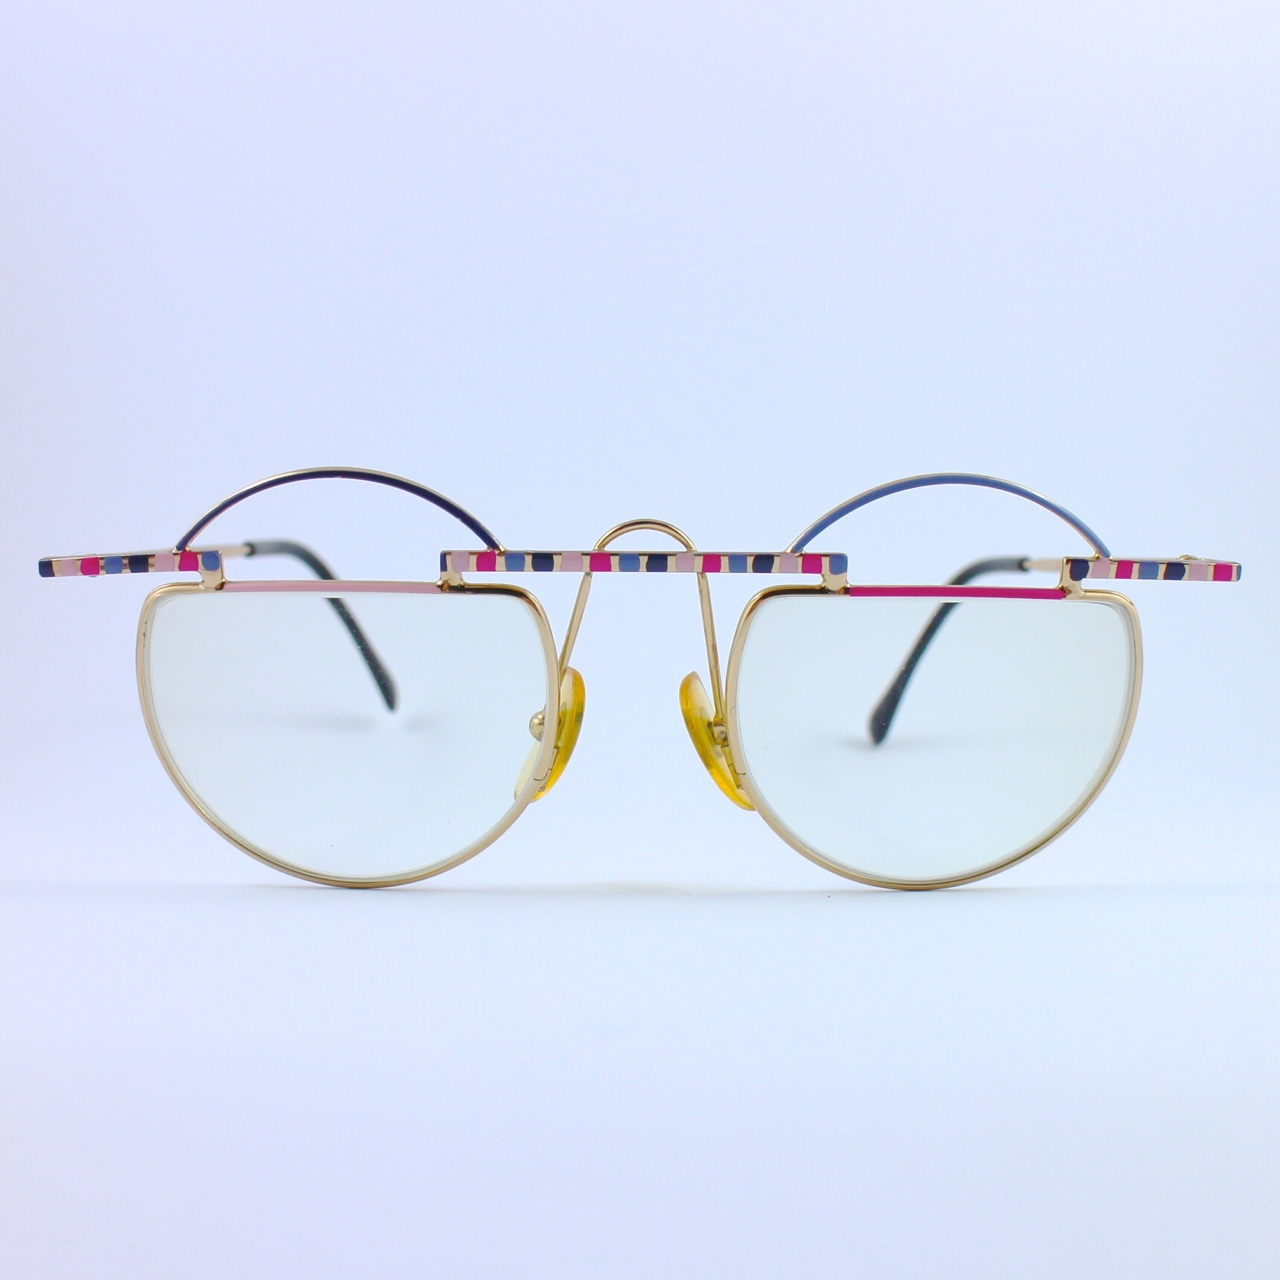 Eyeglass Frames Venice Italy : Taxi glasses with pink, purple and ... Cristiano Spiller ...